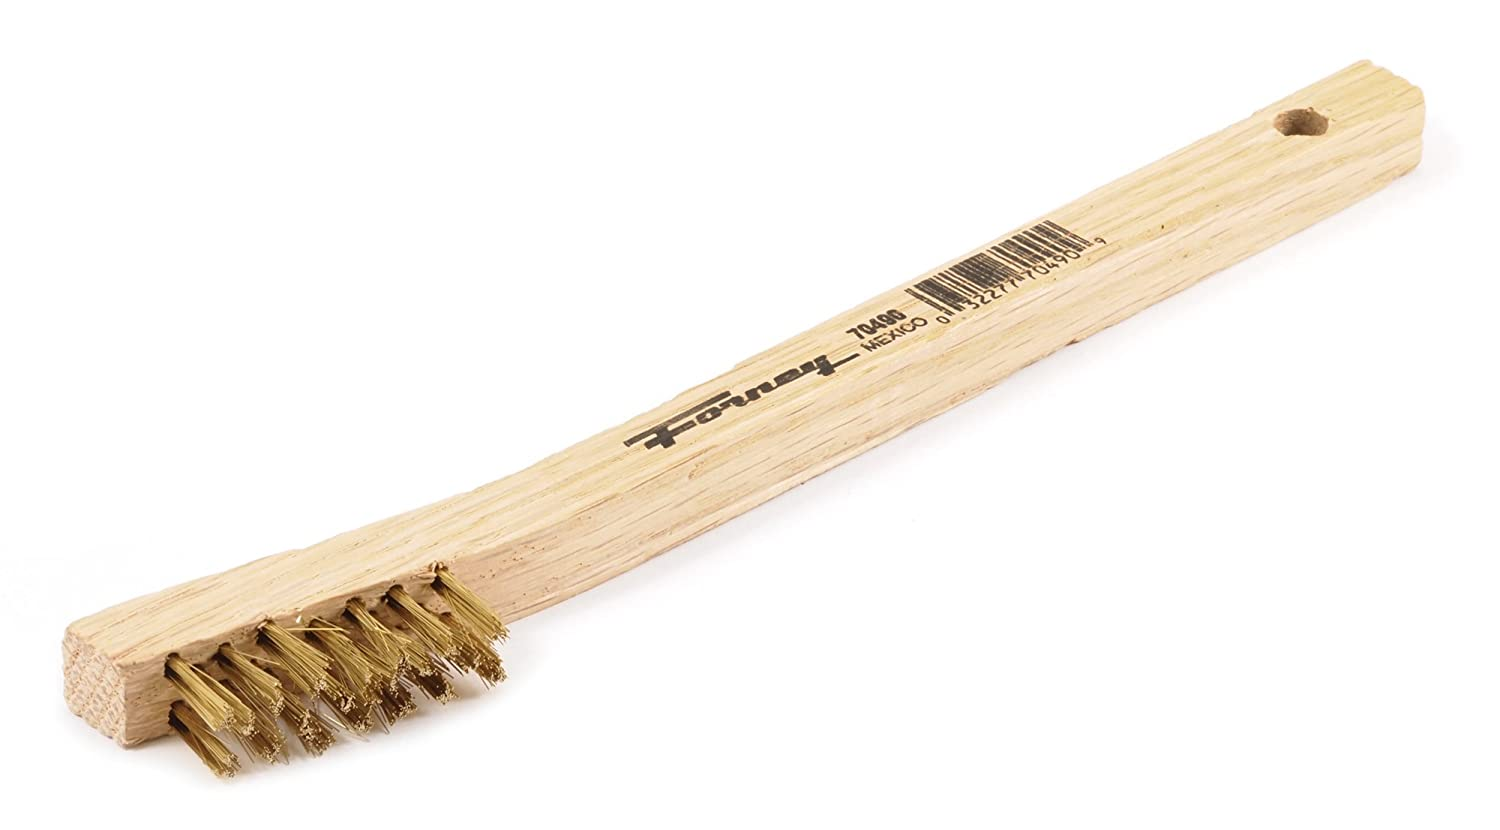 Forney 70490 Wire Scratch Brush Brass with Wood Handle 7 3 4 Inch by .006 Inch